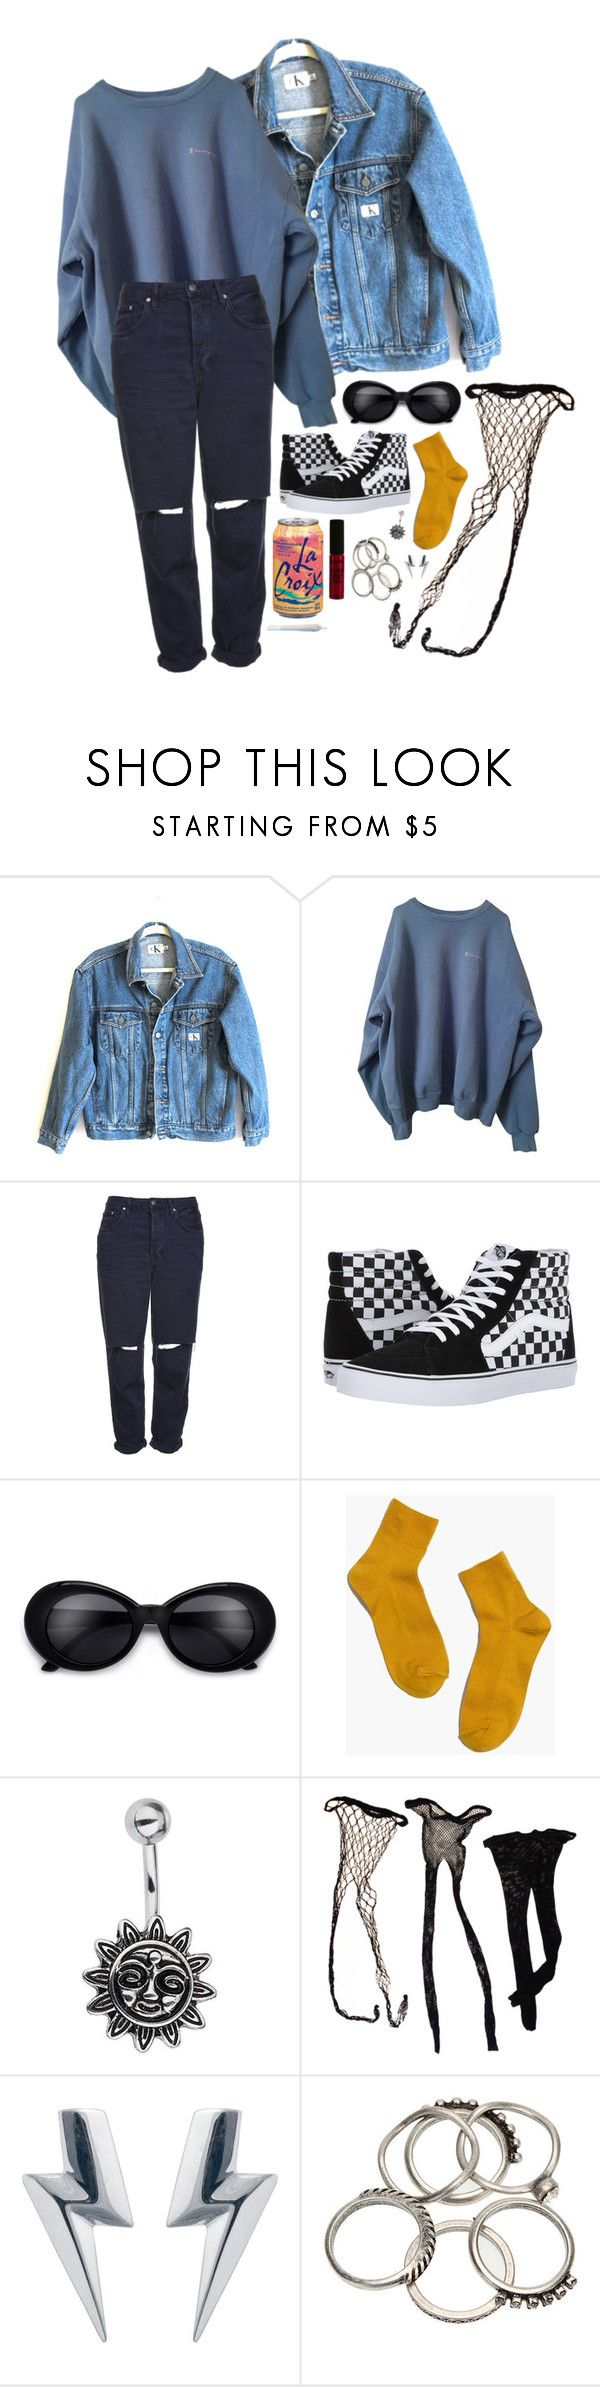 """""""Untitled #321"""" by avilaclare ❤ liked on Polyvore featuring Calvin Klein Jeans, Topshop, Vans, Madewell, Miss Selfridge, Edge Only and NYX"""